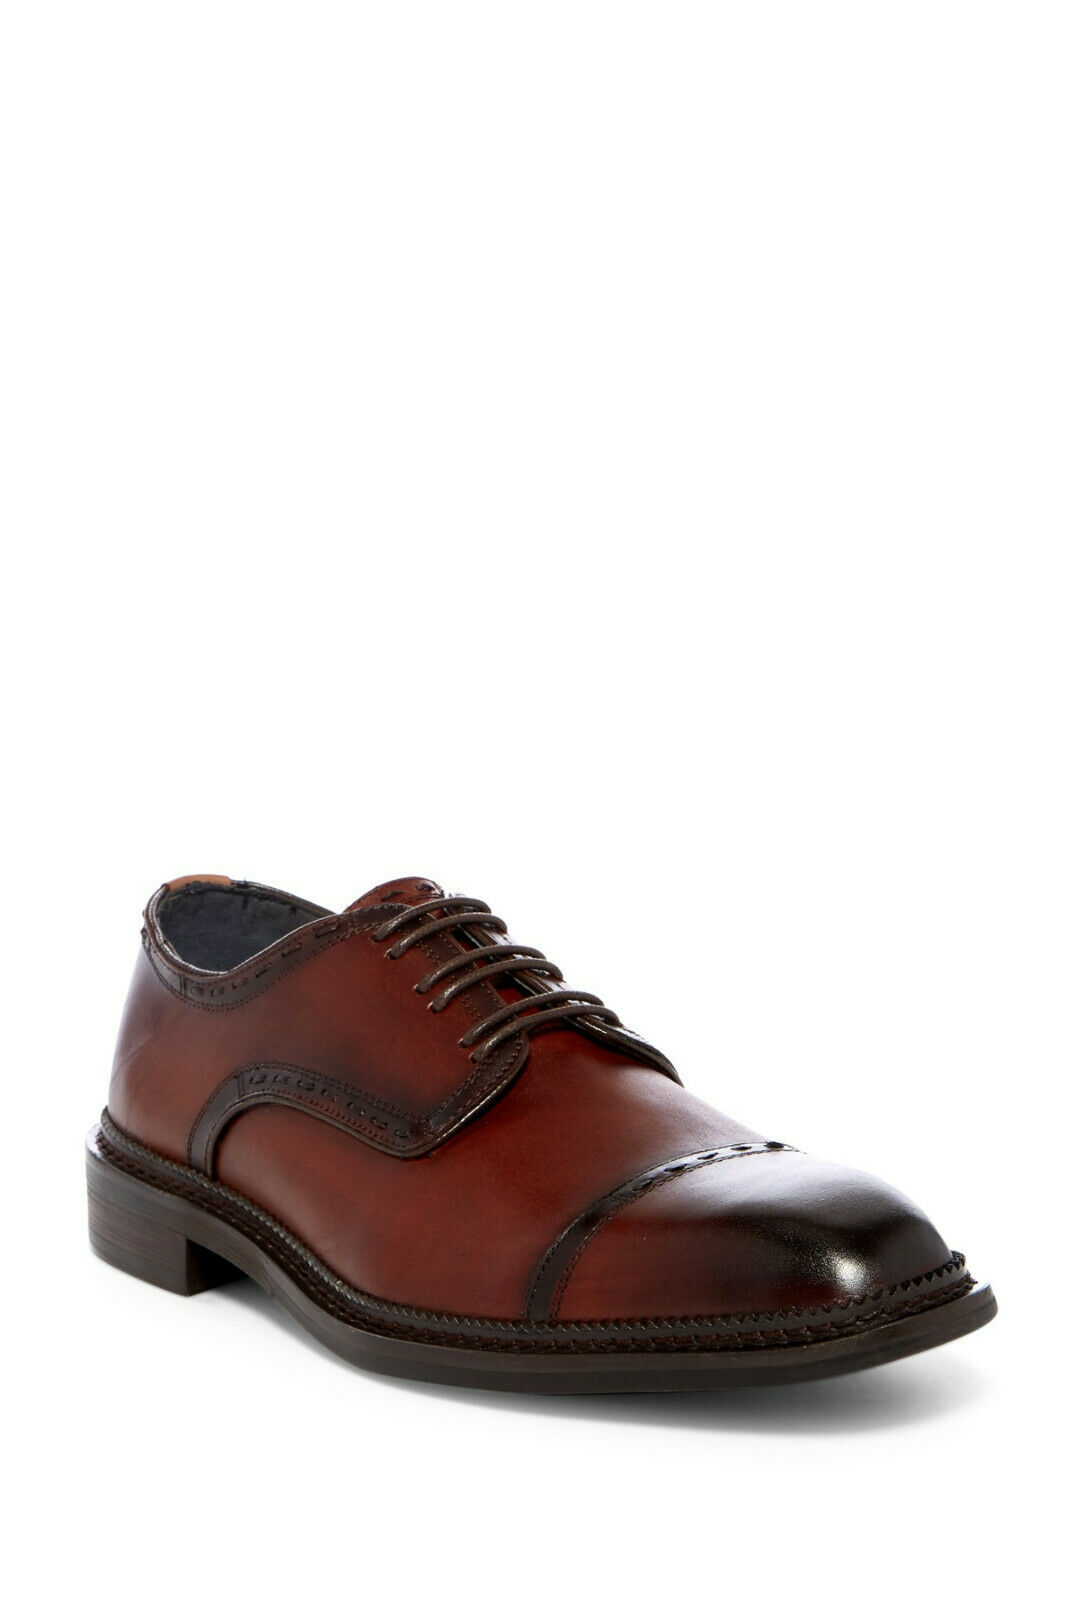 Vintage Foundry Heritage Cap Toe Leather Derby, Topstitched, Size 10,  330, NWB